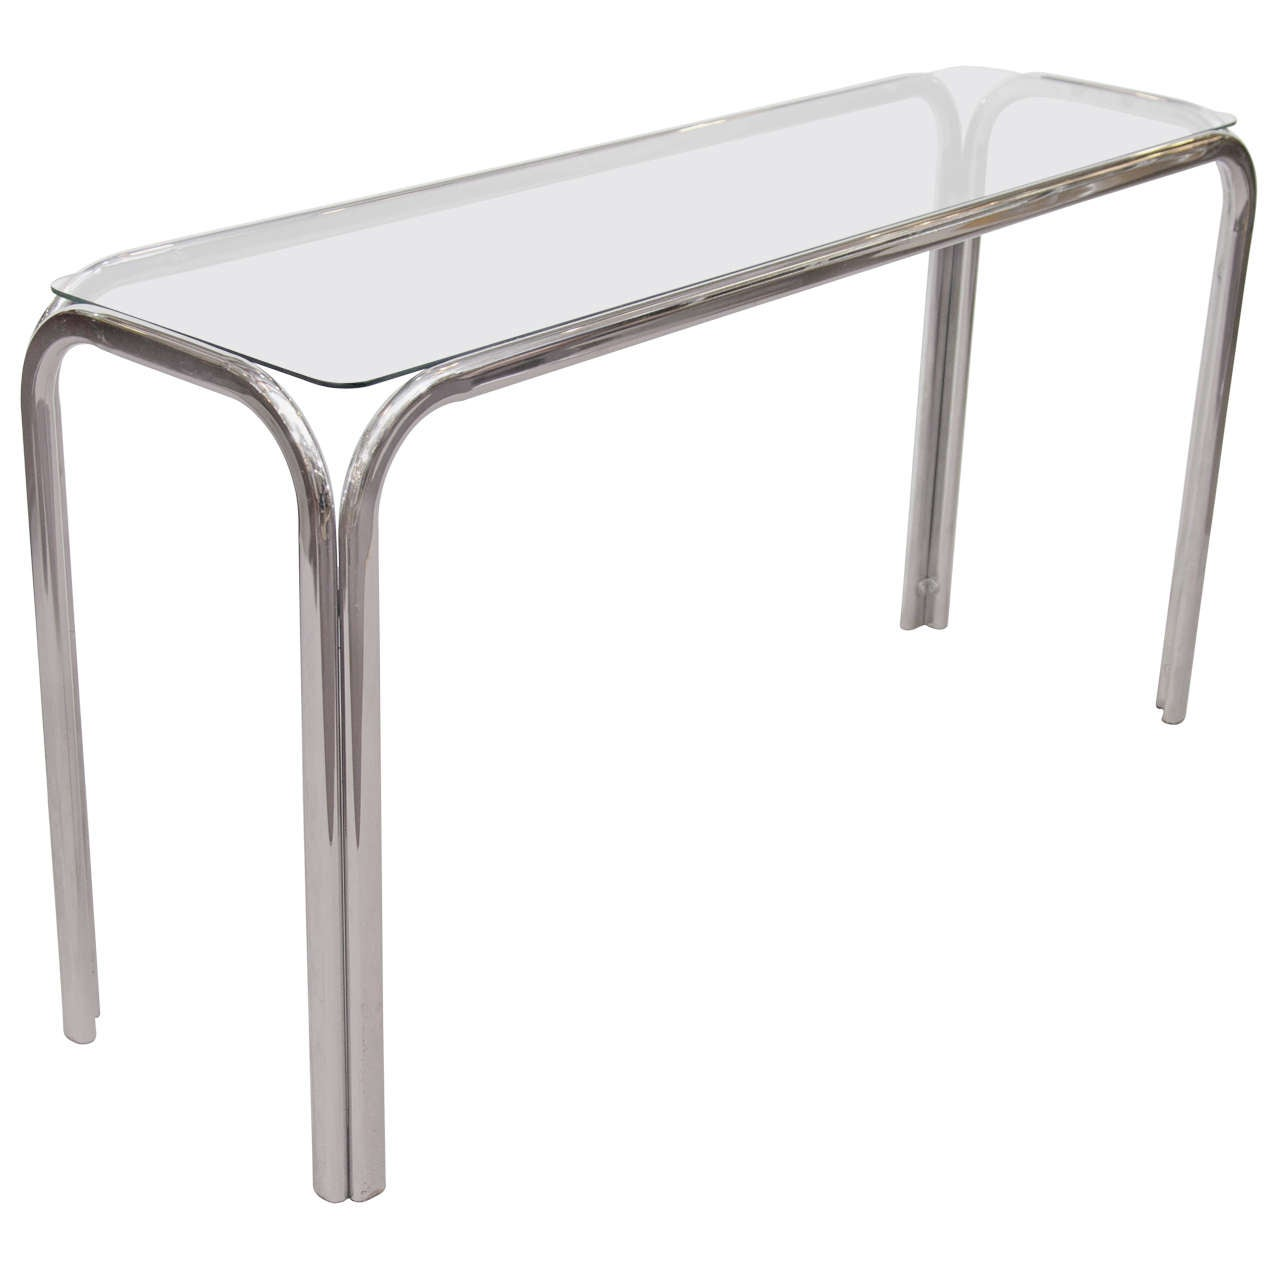 mid century chrome and glass console table at stdibs. mid century chrome and glass console table